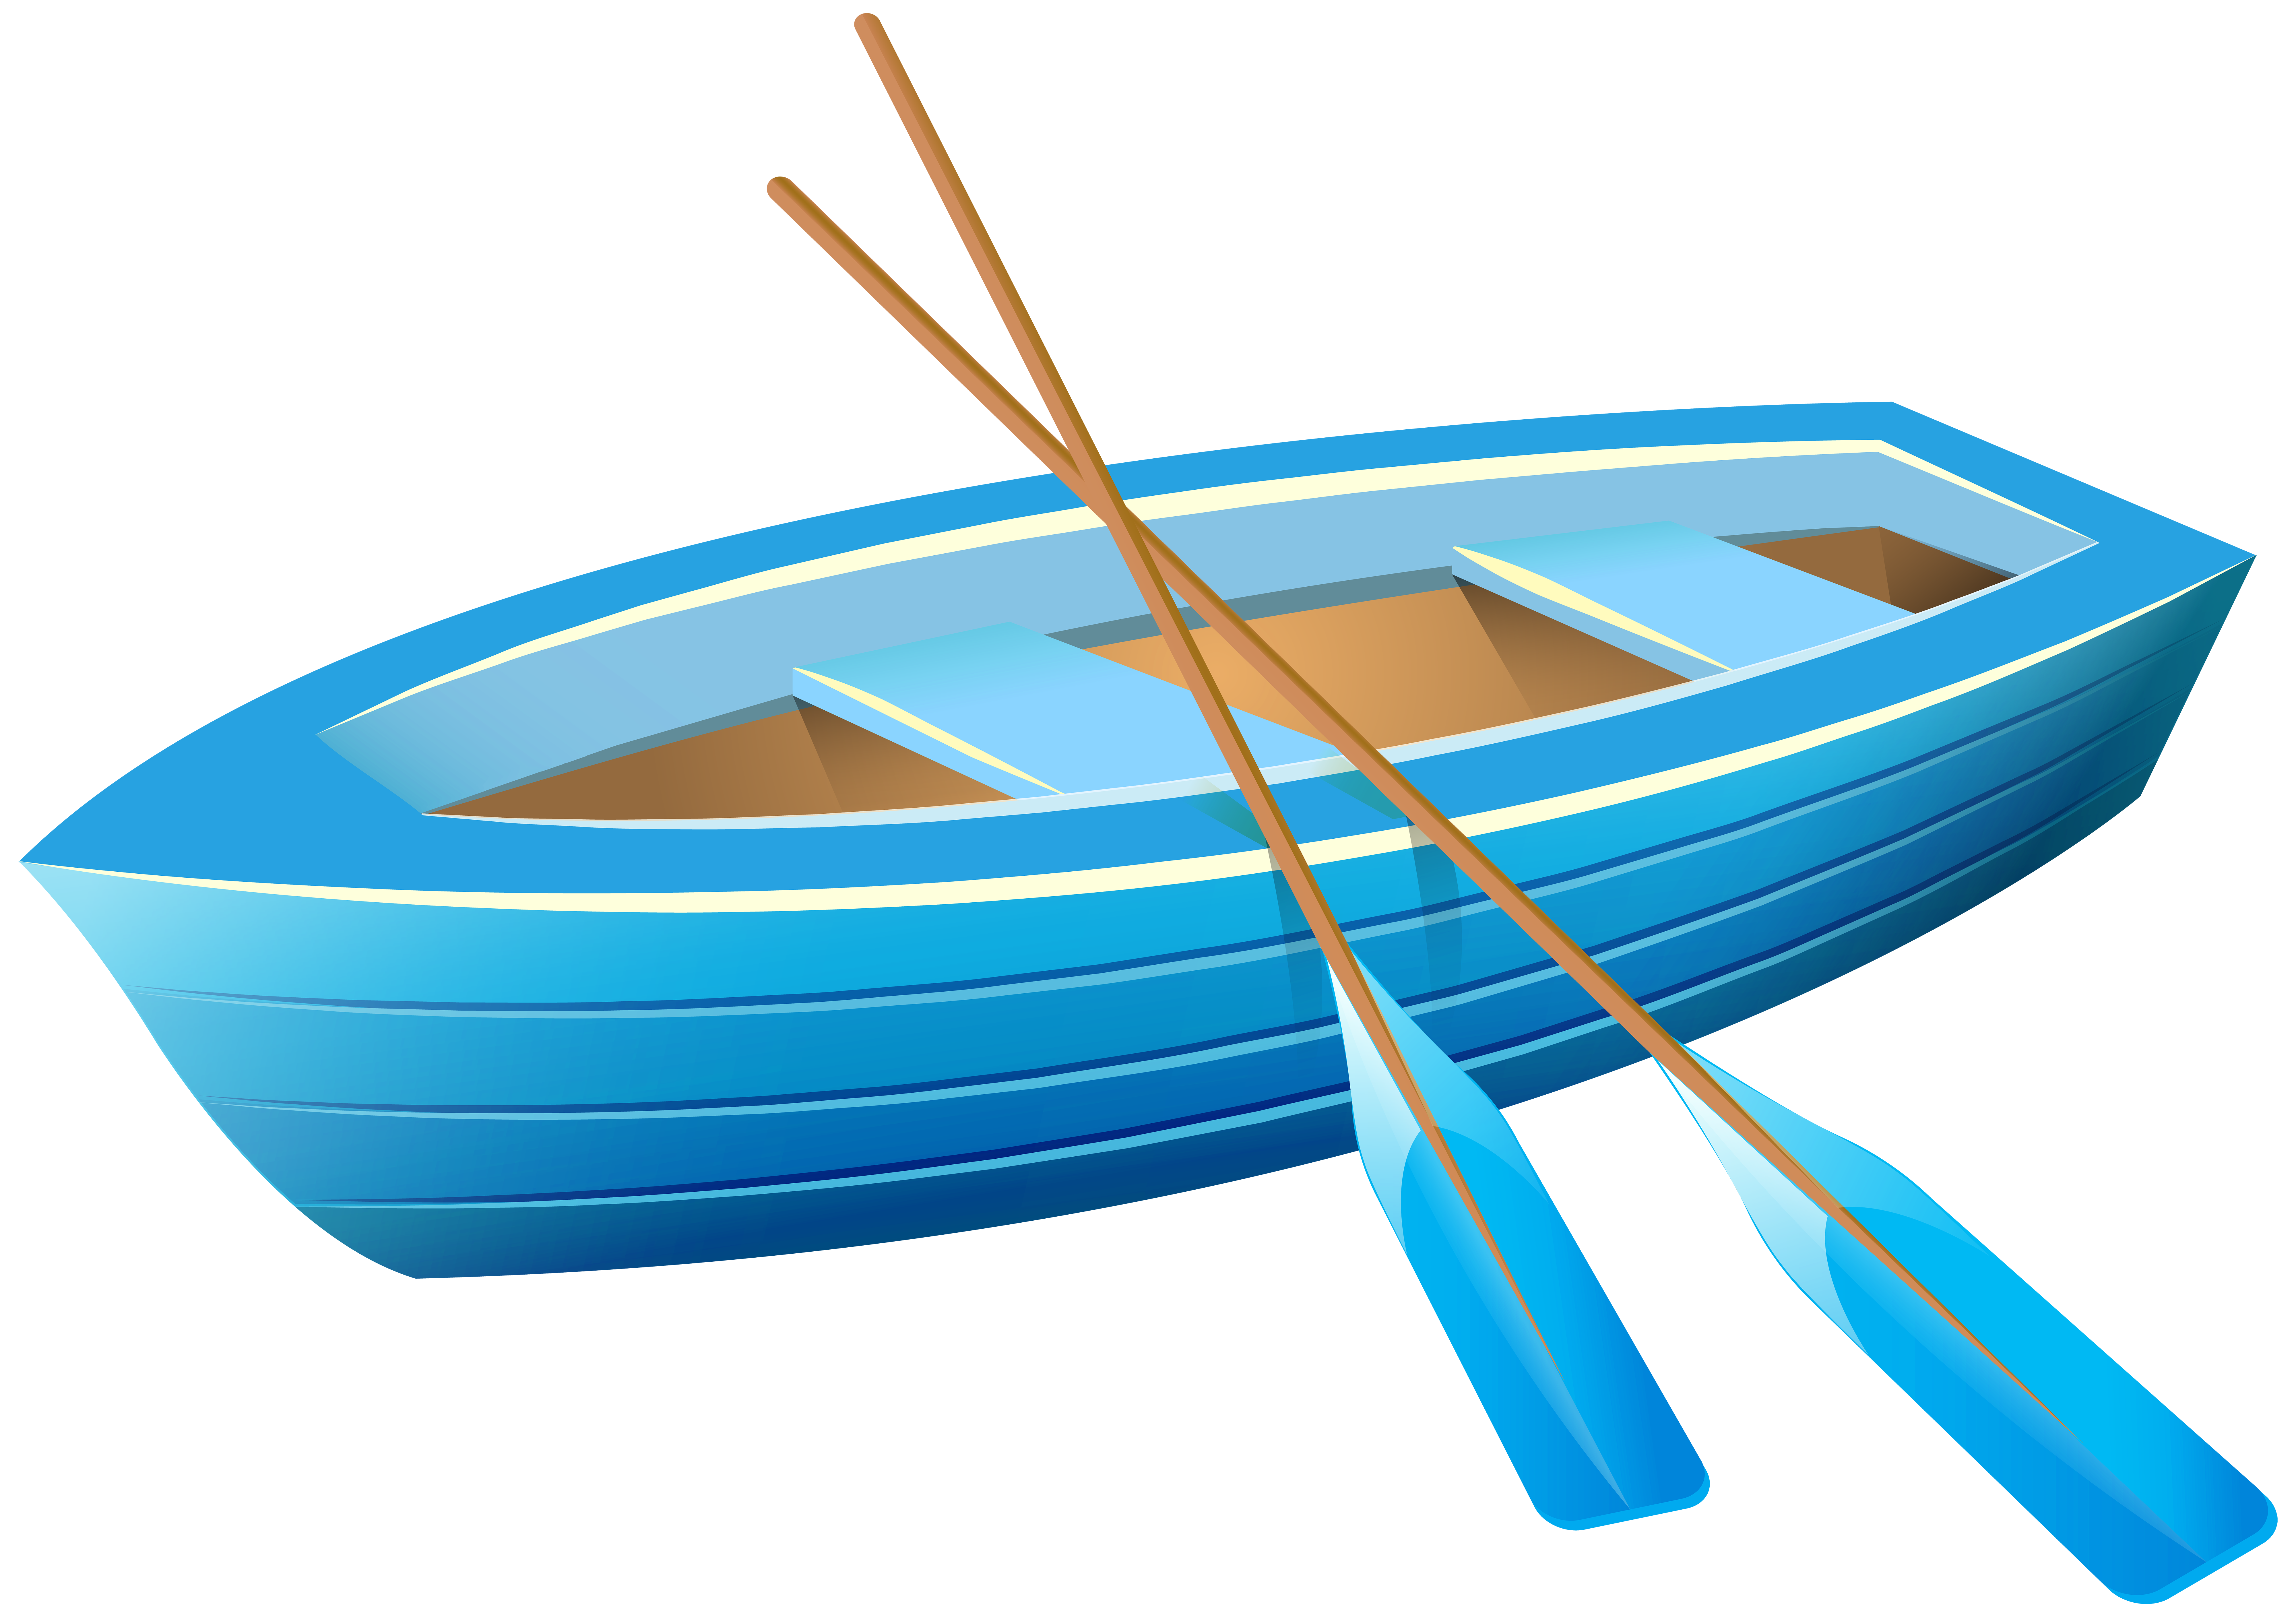 Boat clipart. For free download images